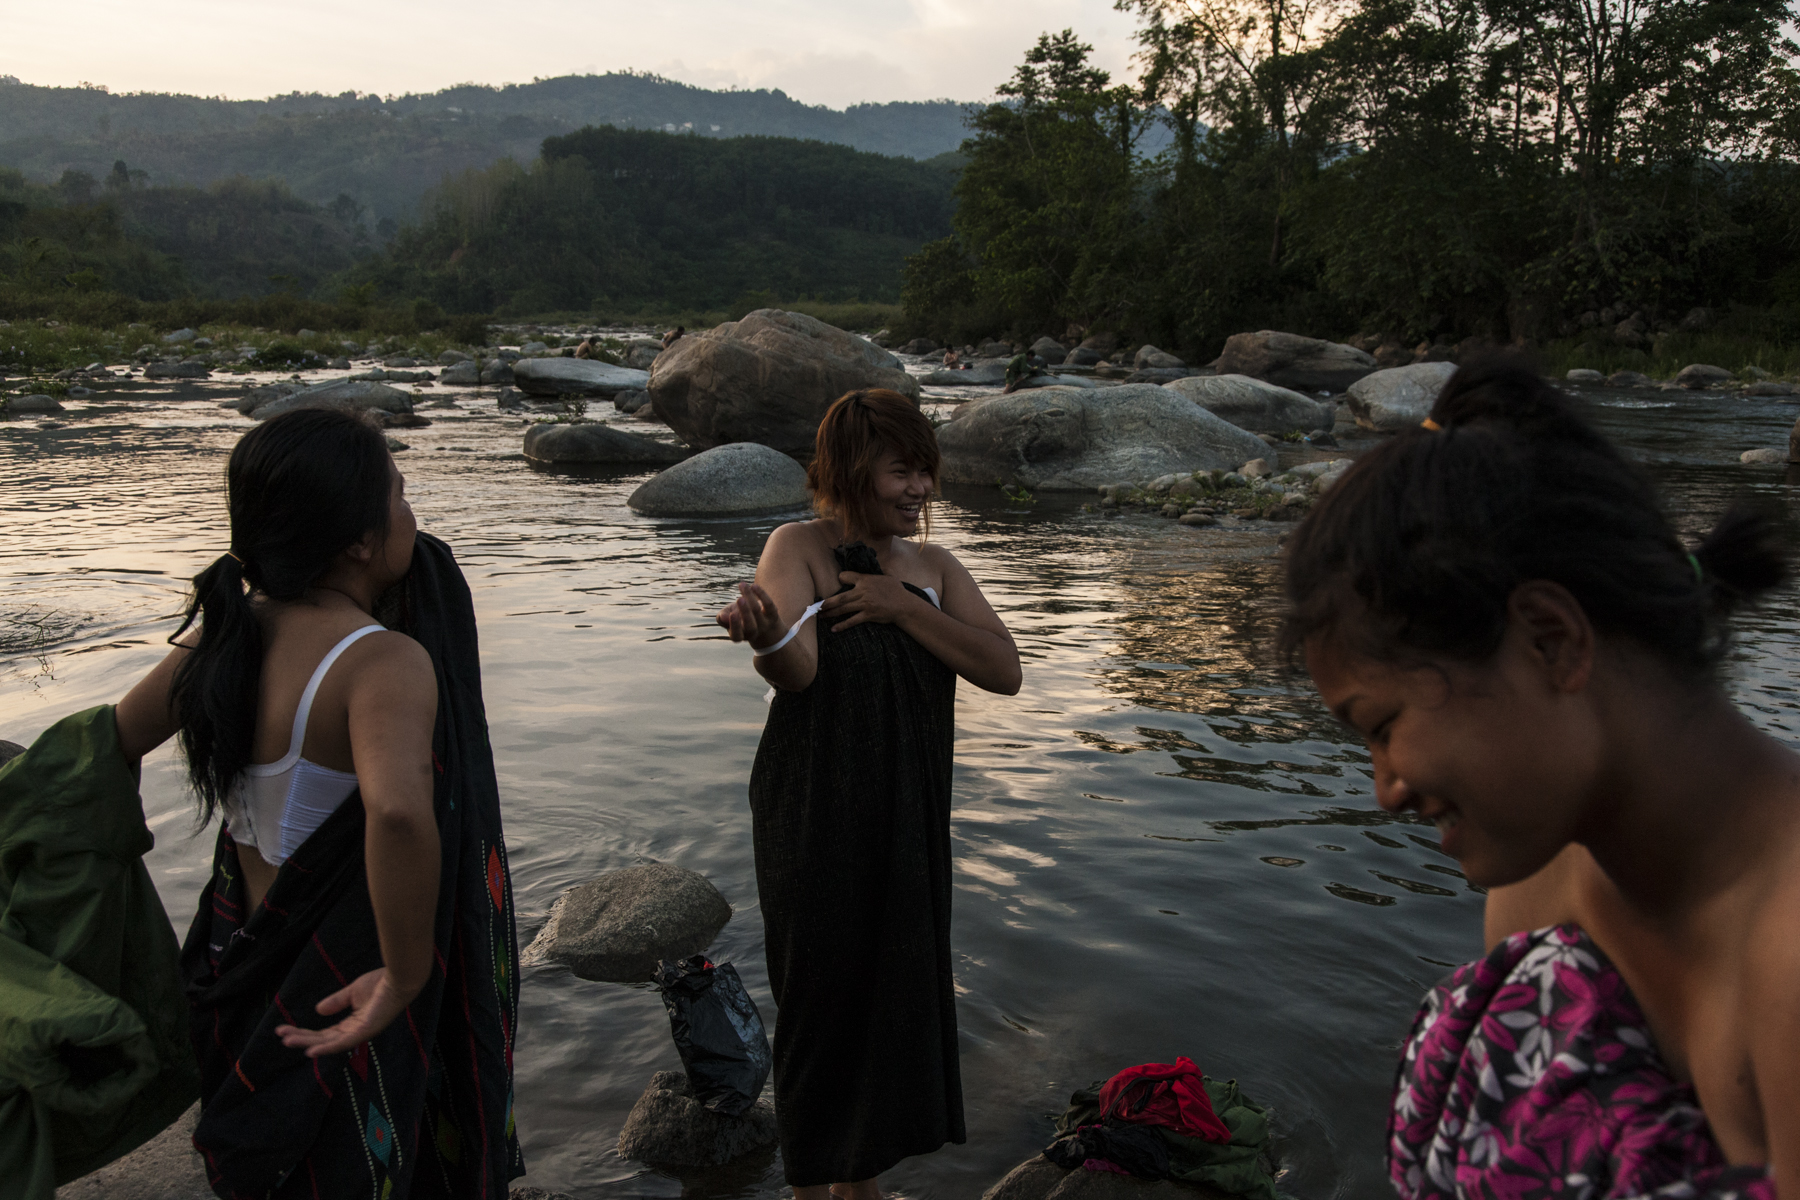 After their training the women were given 15 minutes to wash themselves and their clothes in the river near the KIA's military base outside of Laiza, Kachin State, Myanmar, May 17, 2013. They tried to cover themselves while bathing the best that they could as the men washed just upstream.